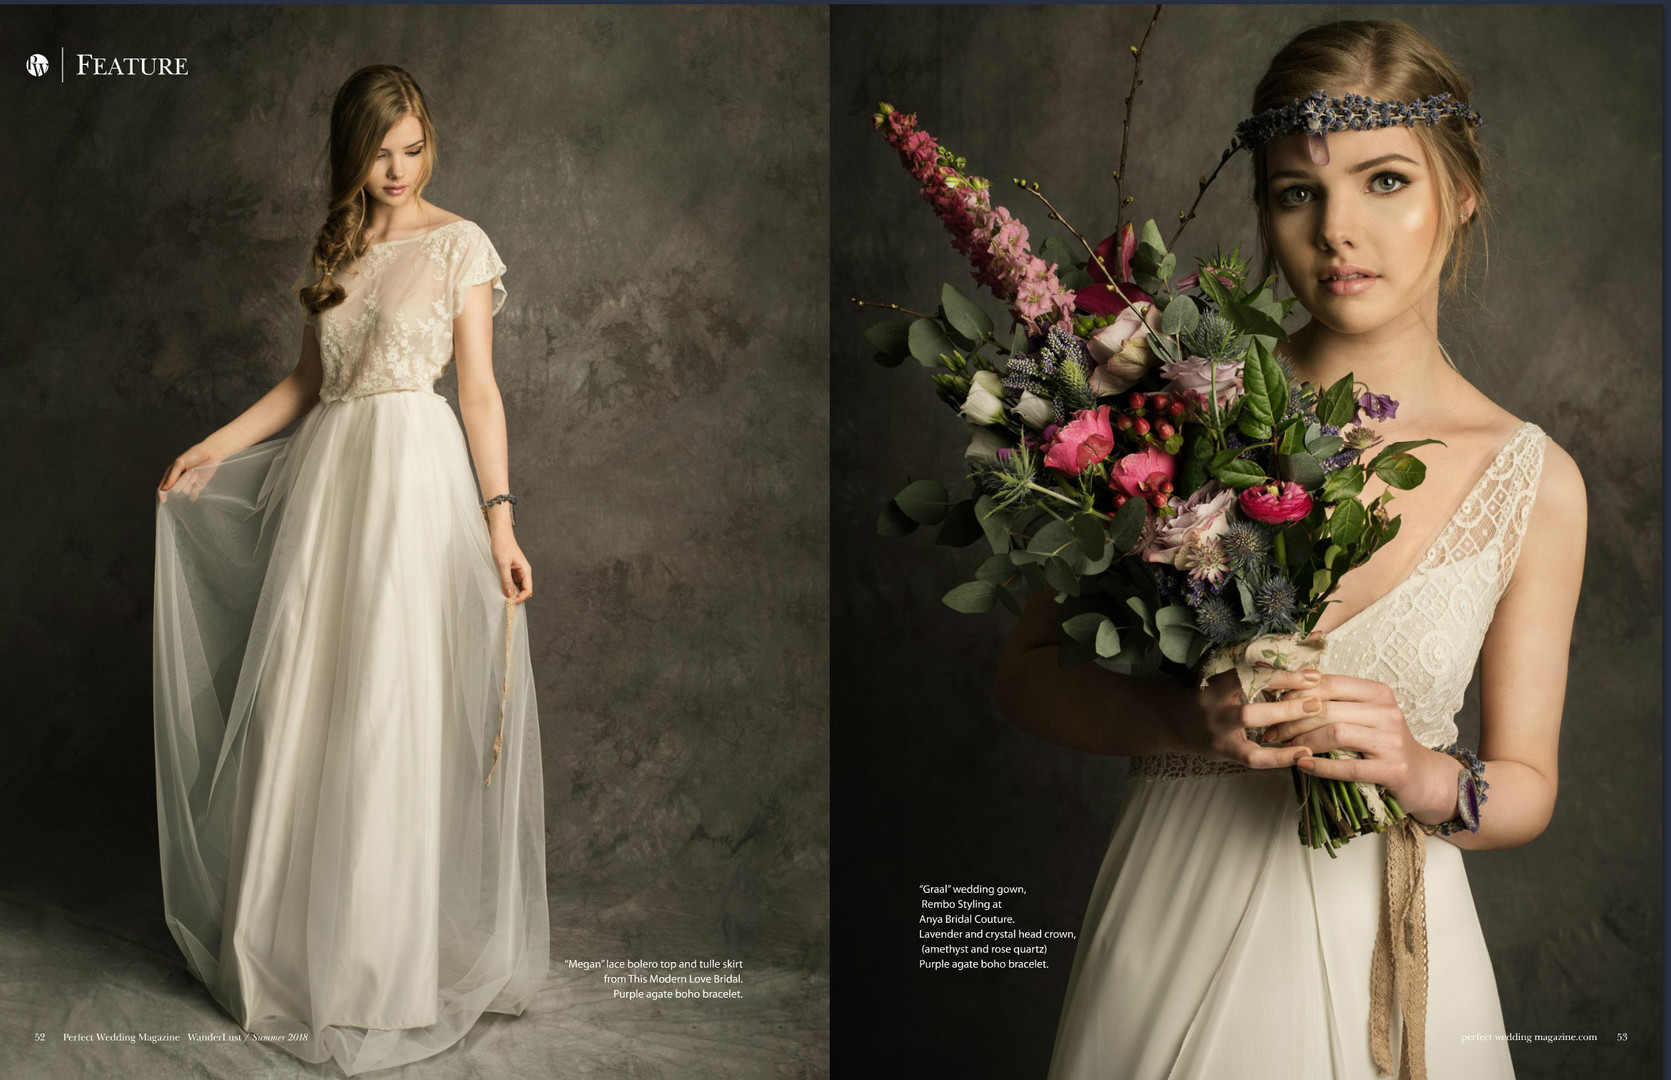 Perfect Wedding Magazine Summer 2018